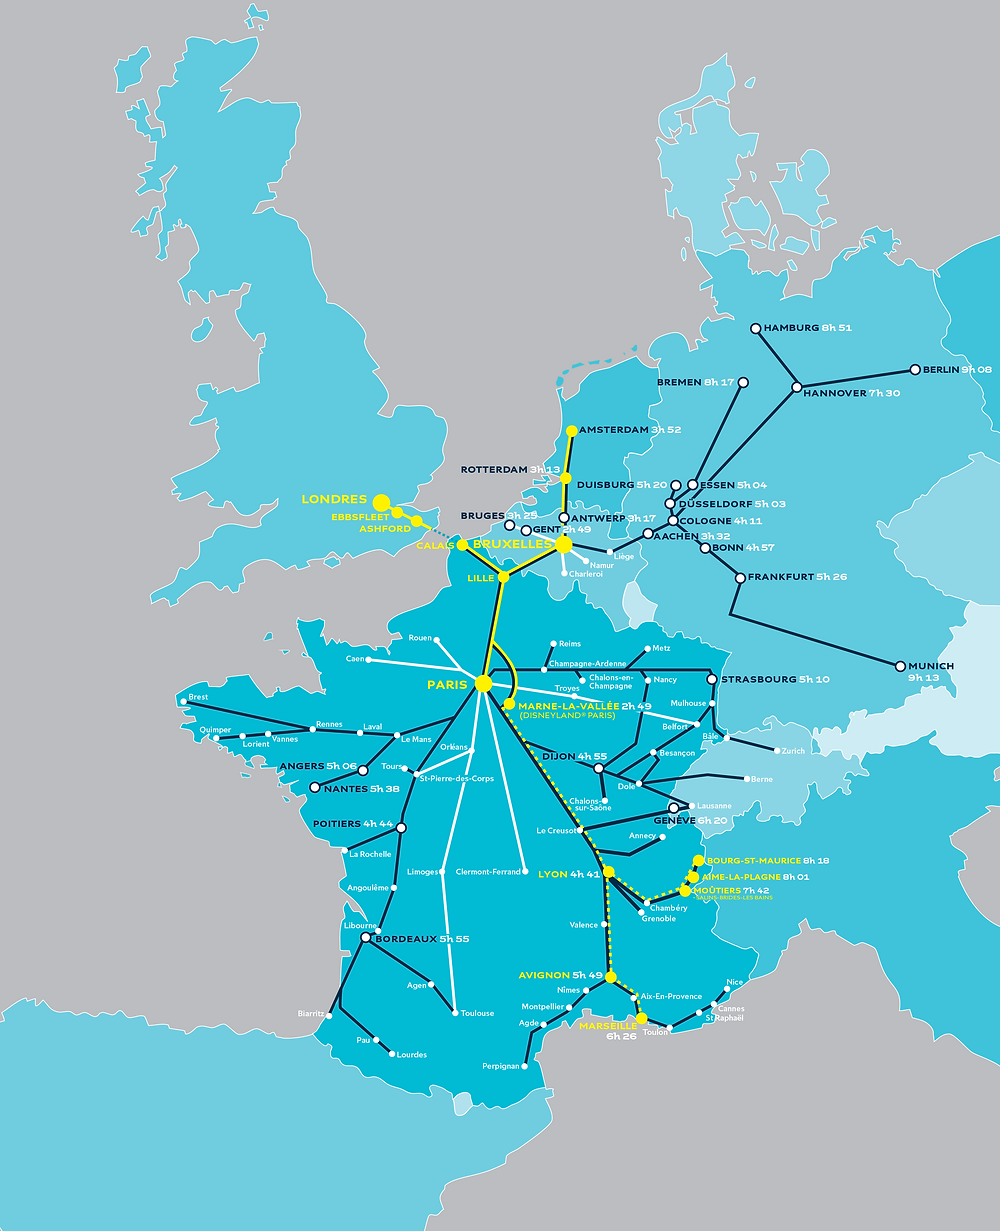 Map of Eurostar's train routes in Europe